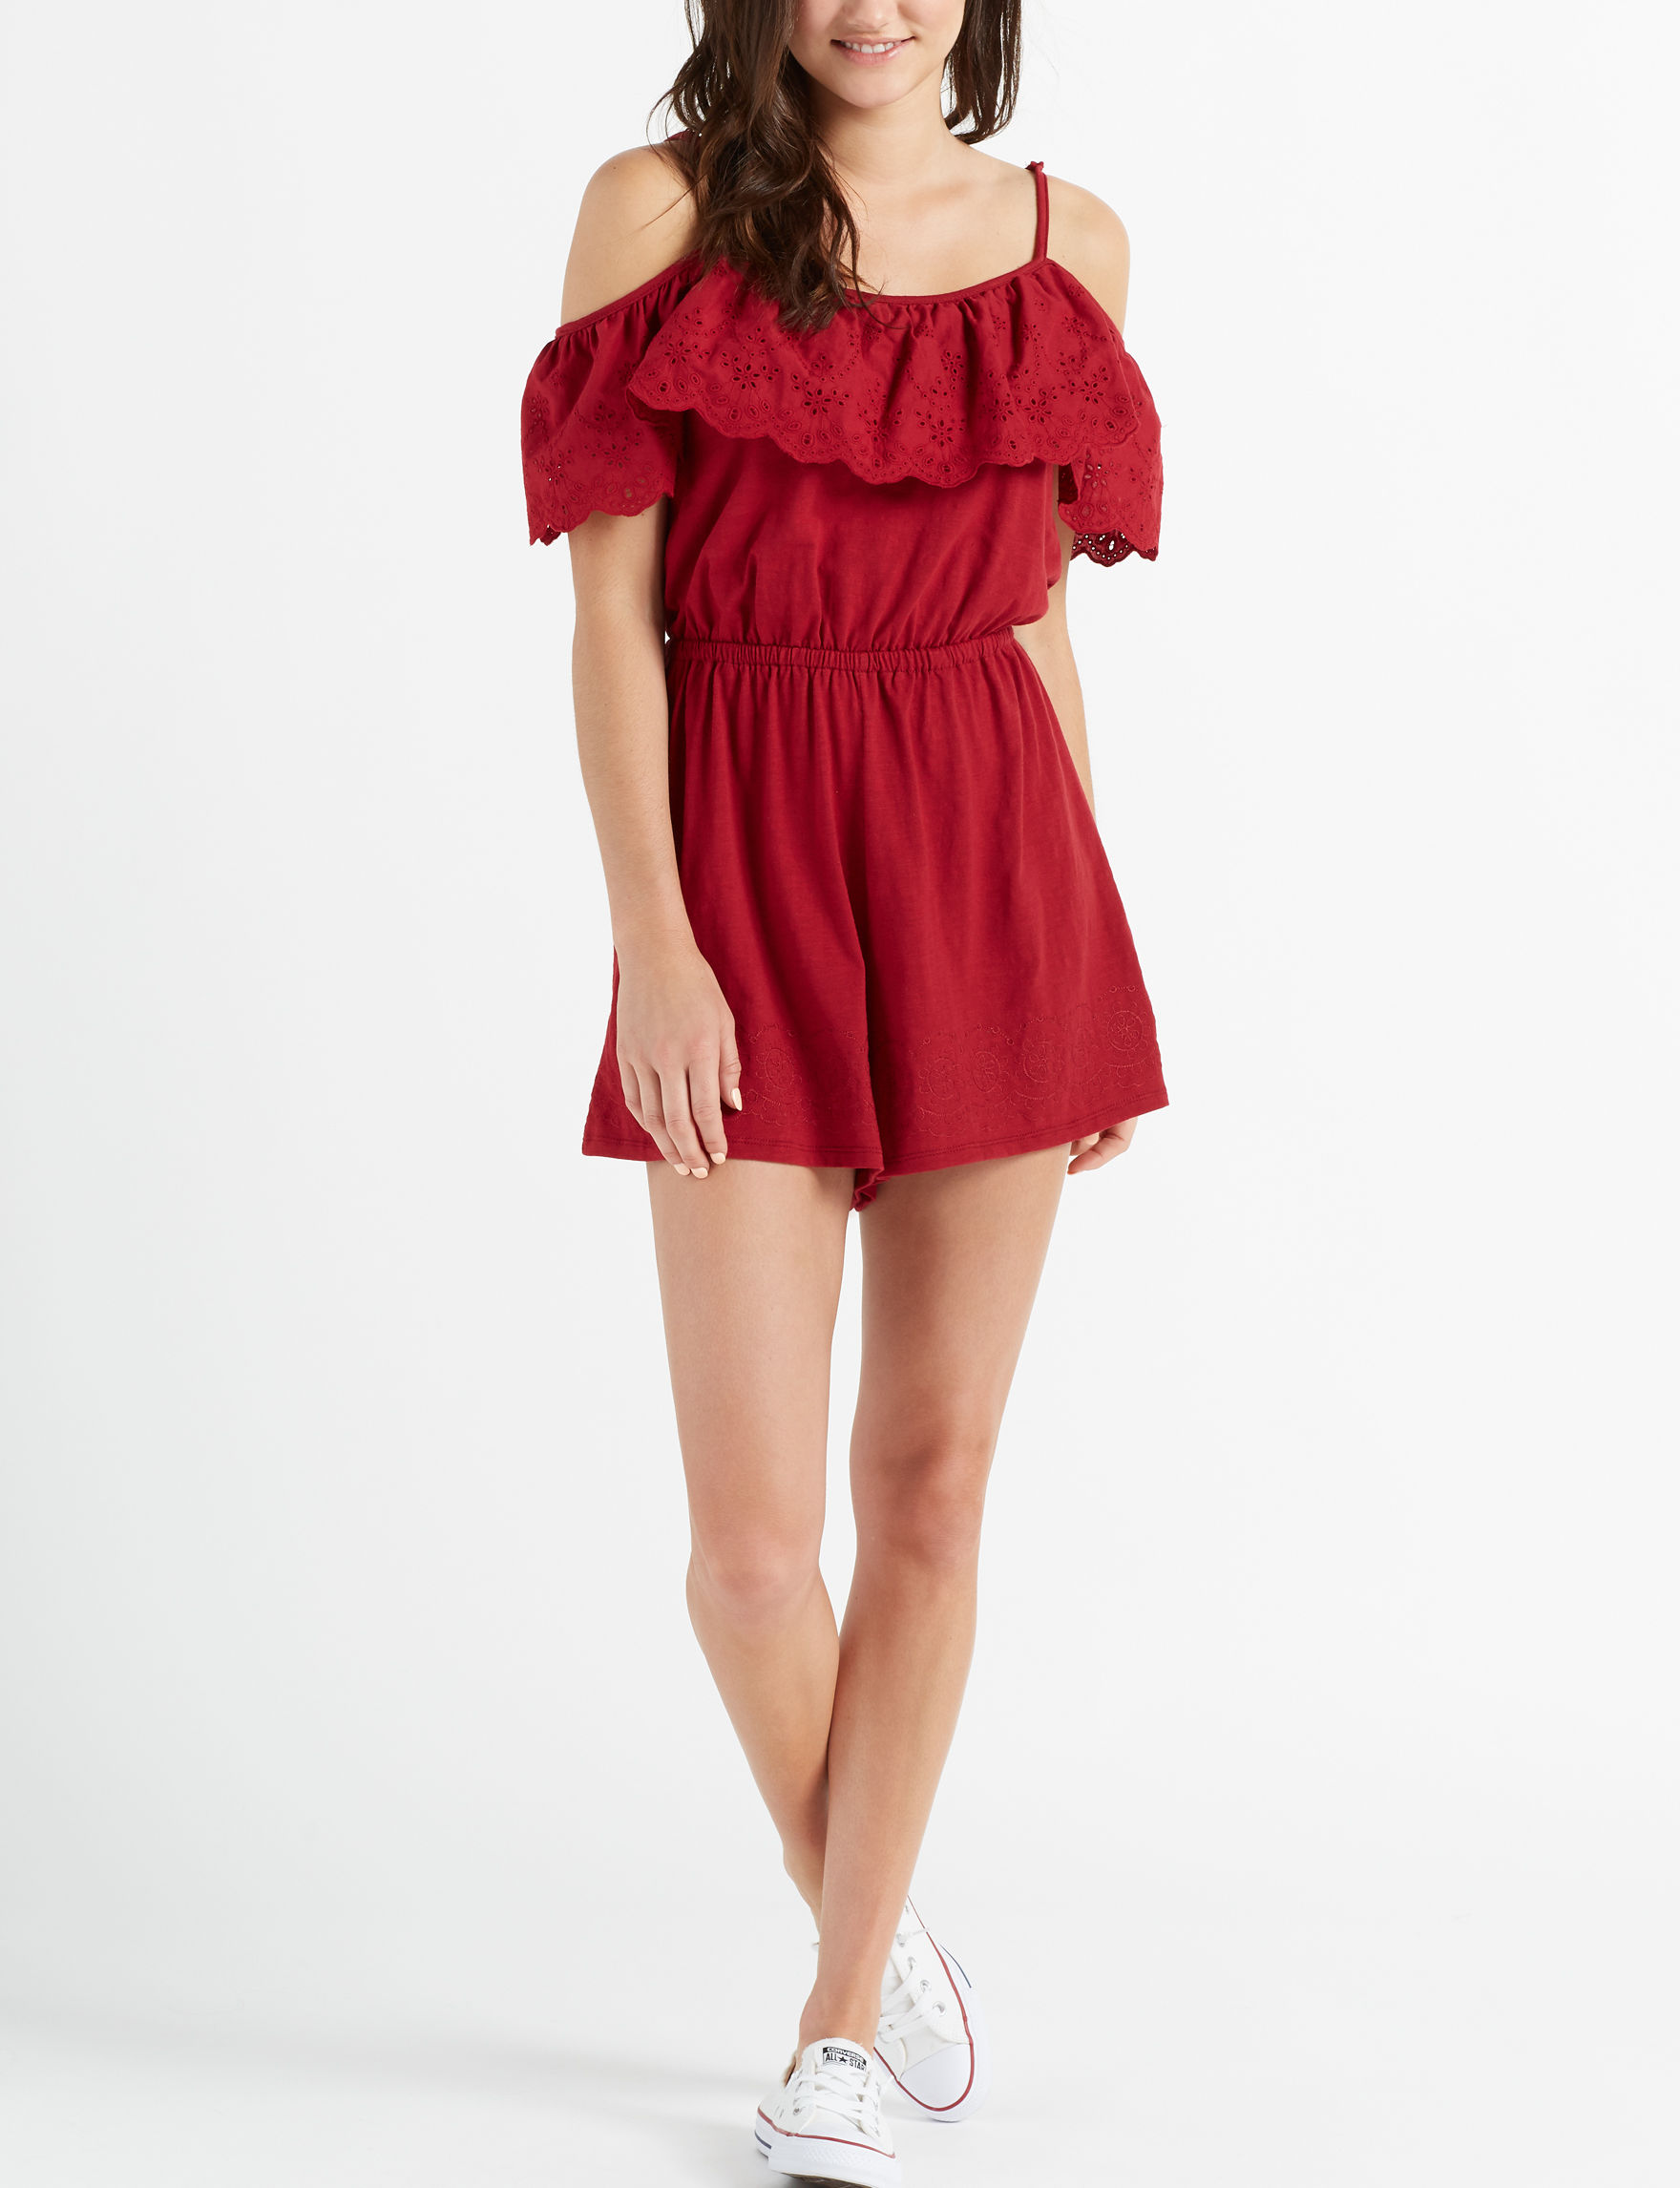 Wishful Park Red Everyday & Casual